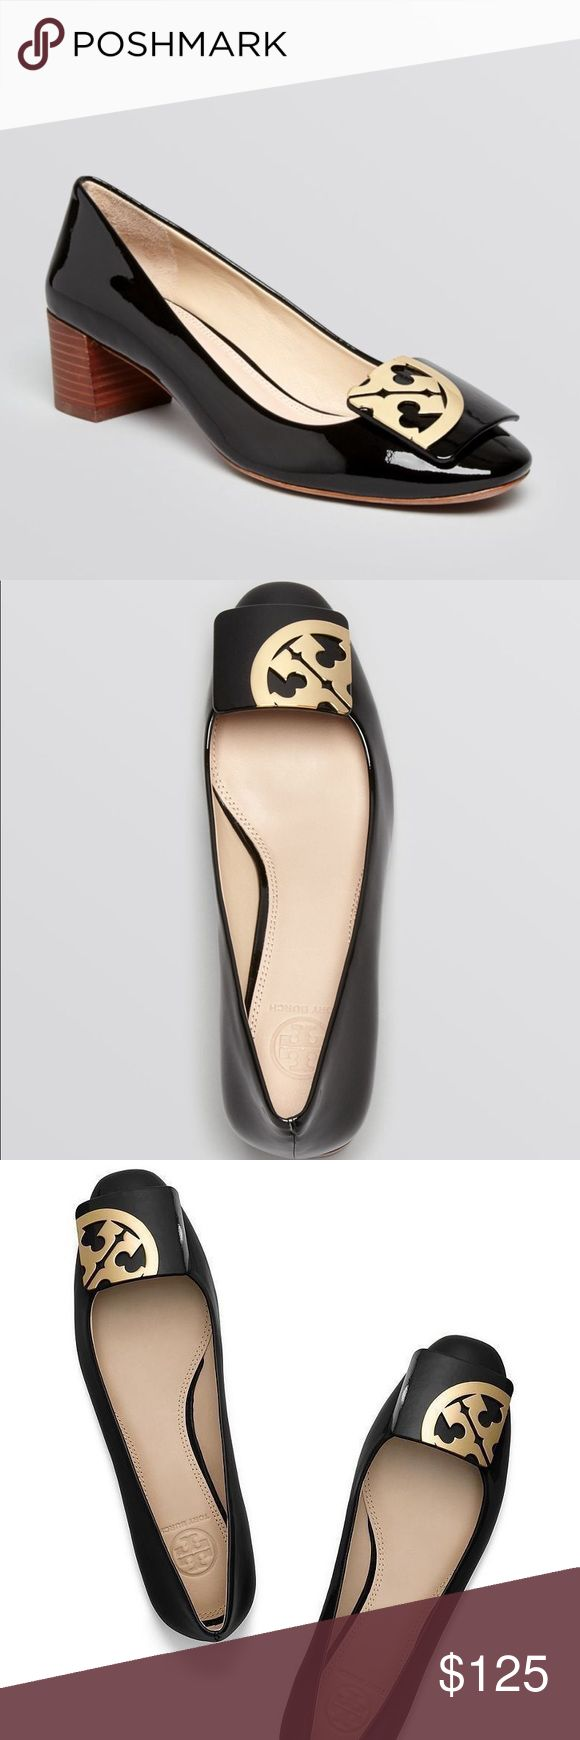 Tory Burch Square Toe Logo Pumps